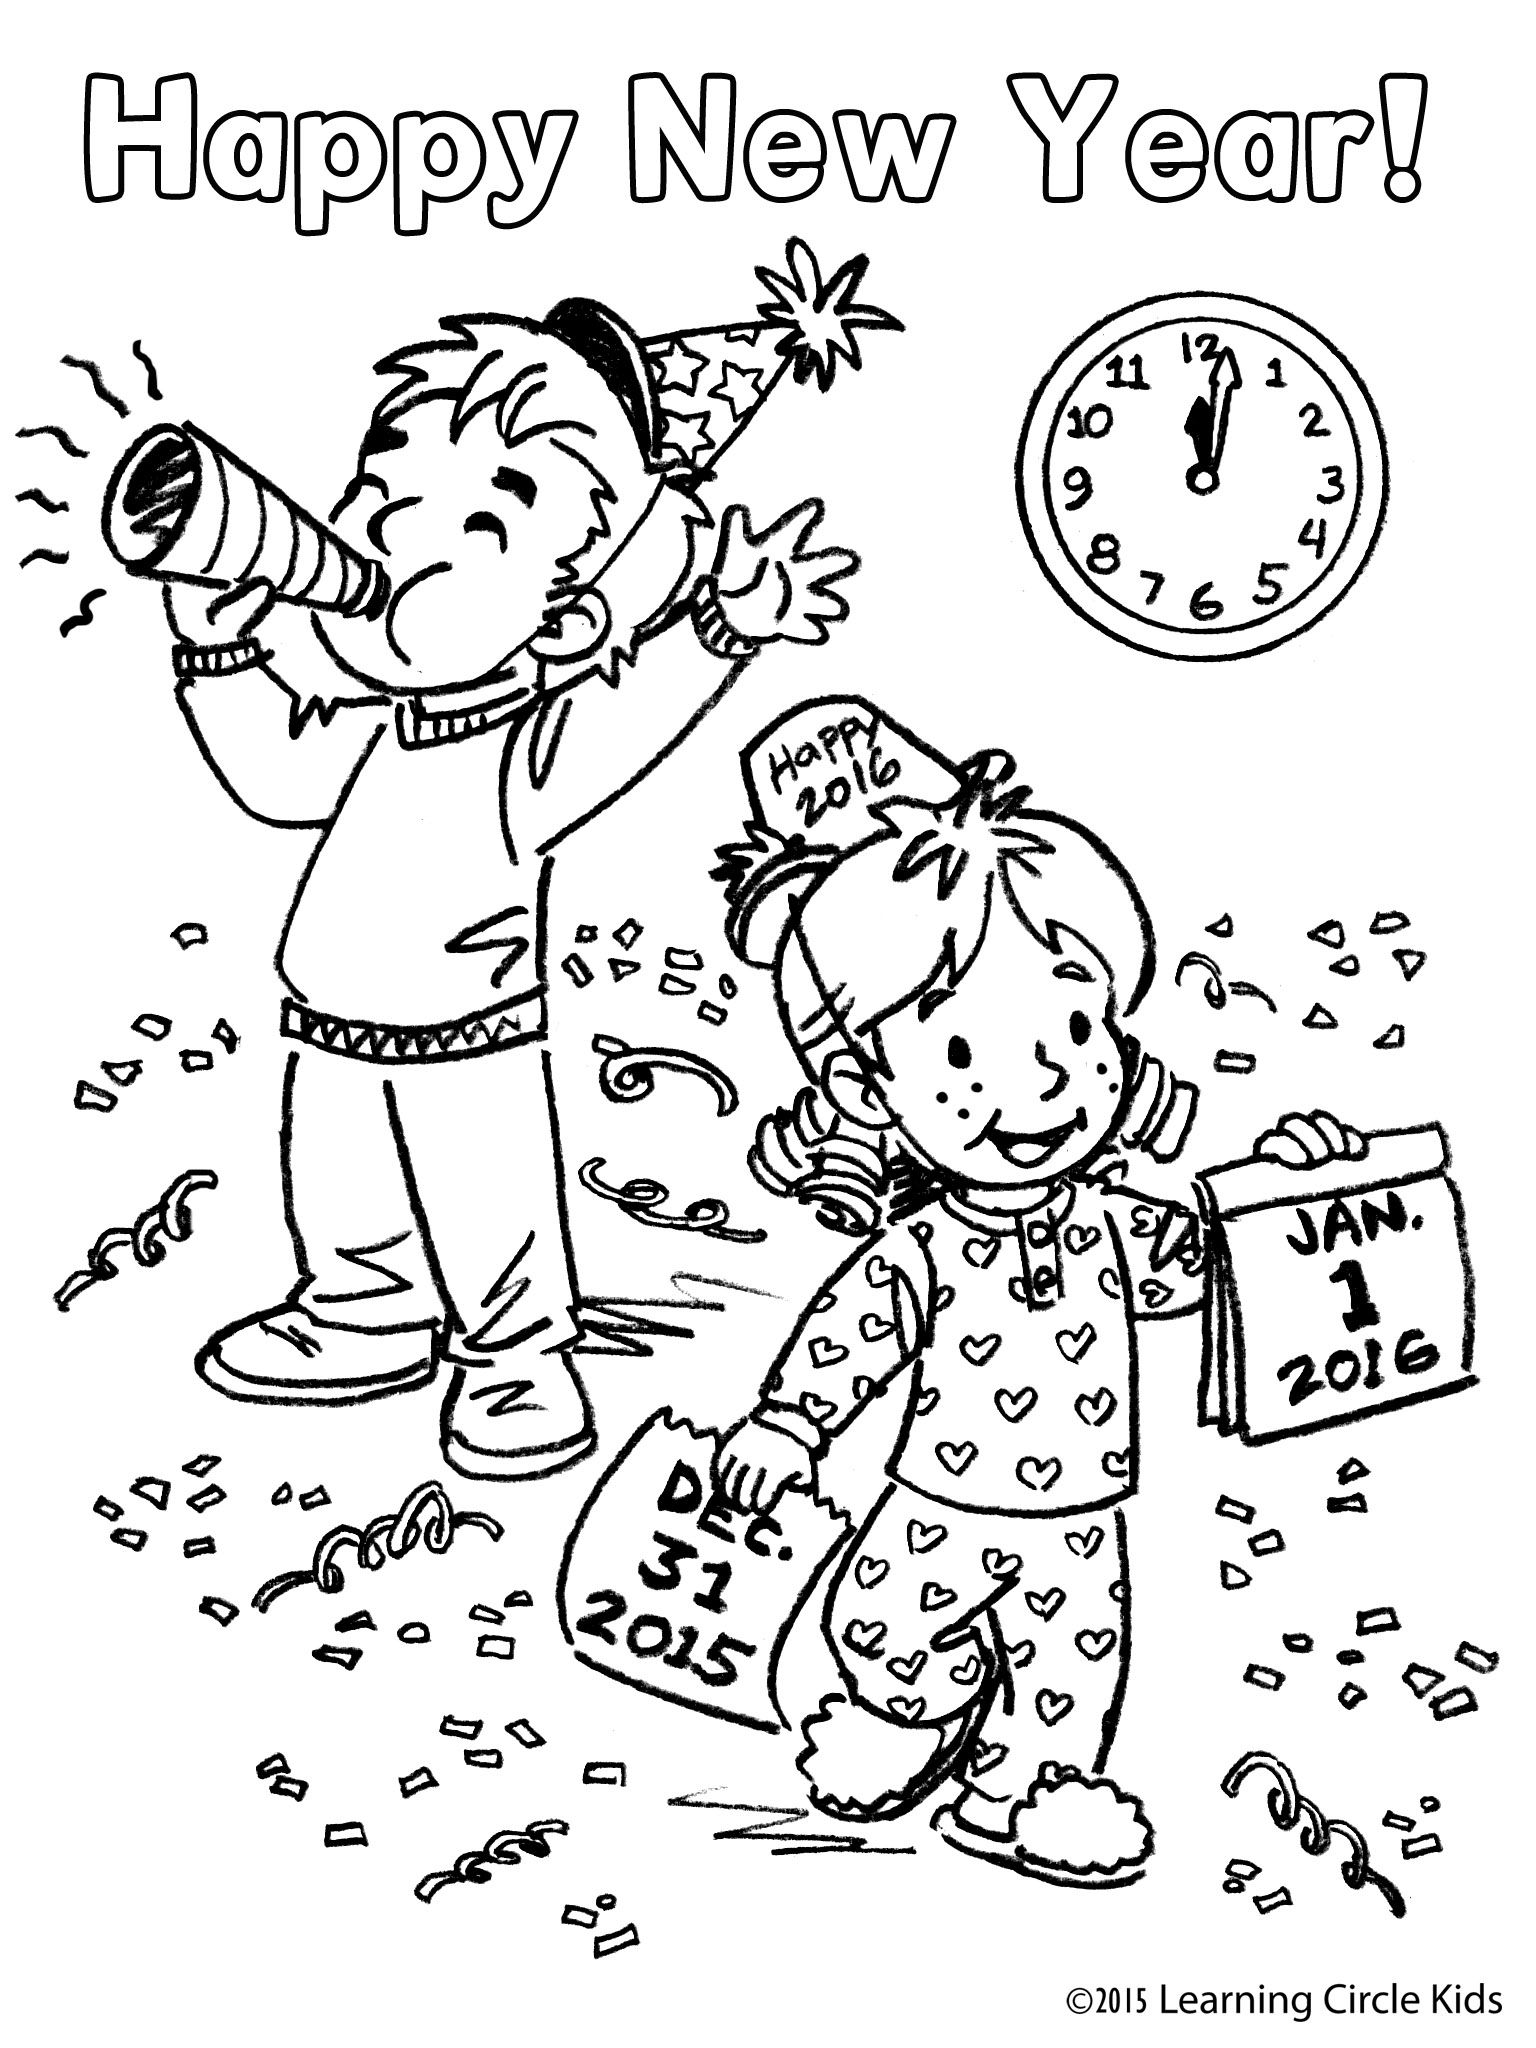 Free coloring page for Kids New Year Party